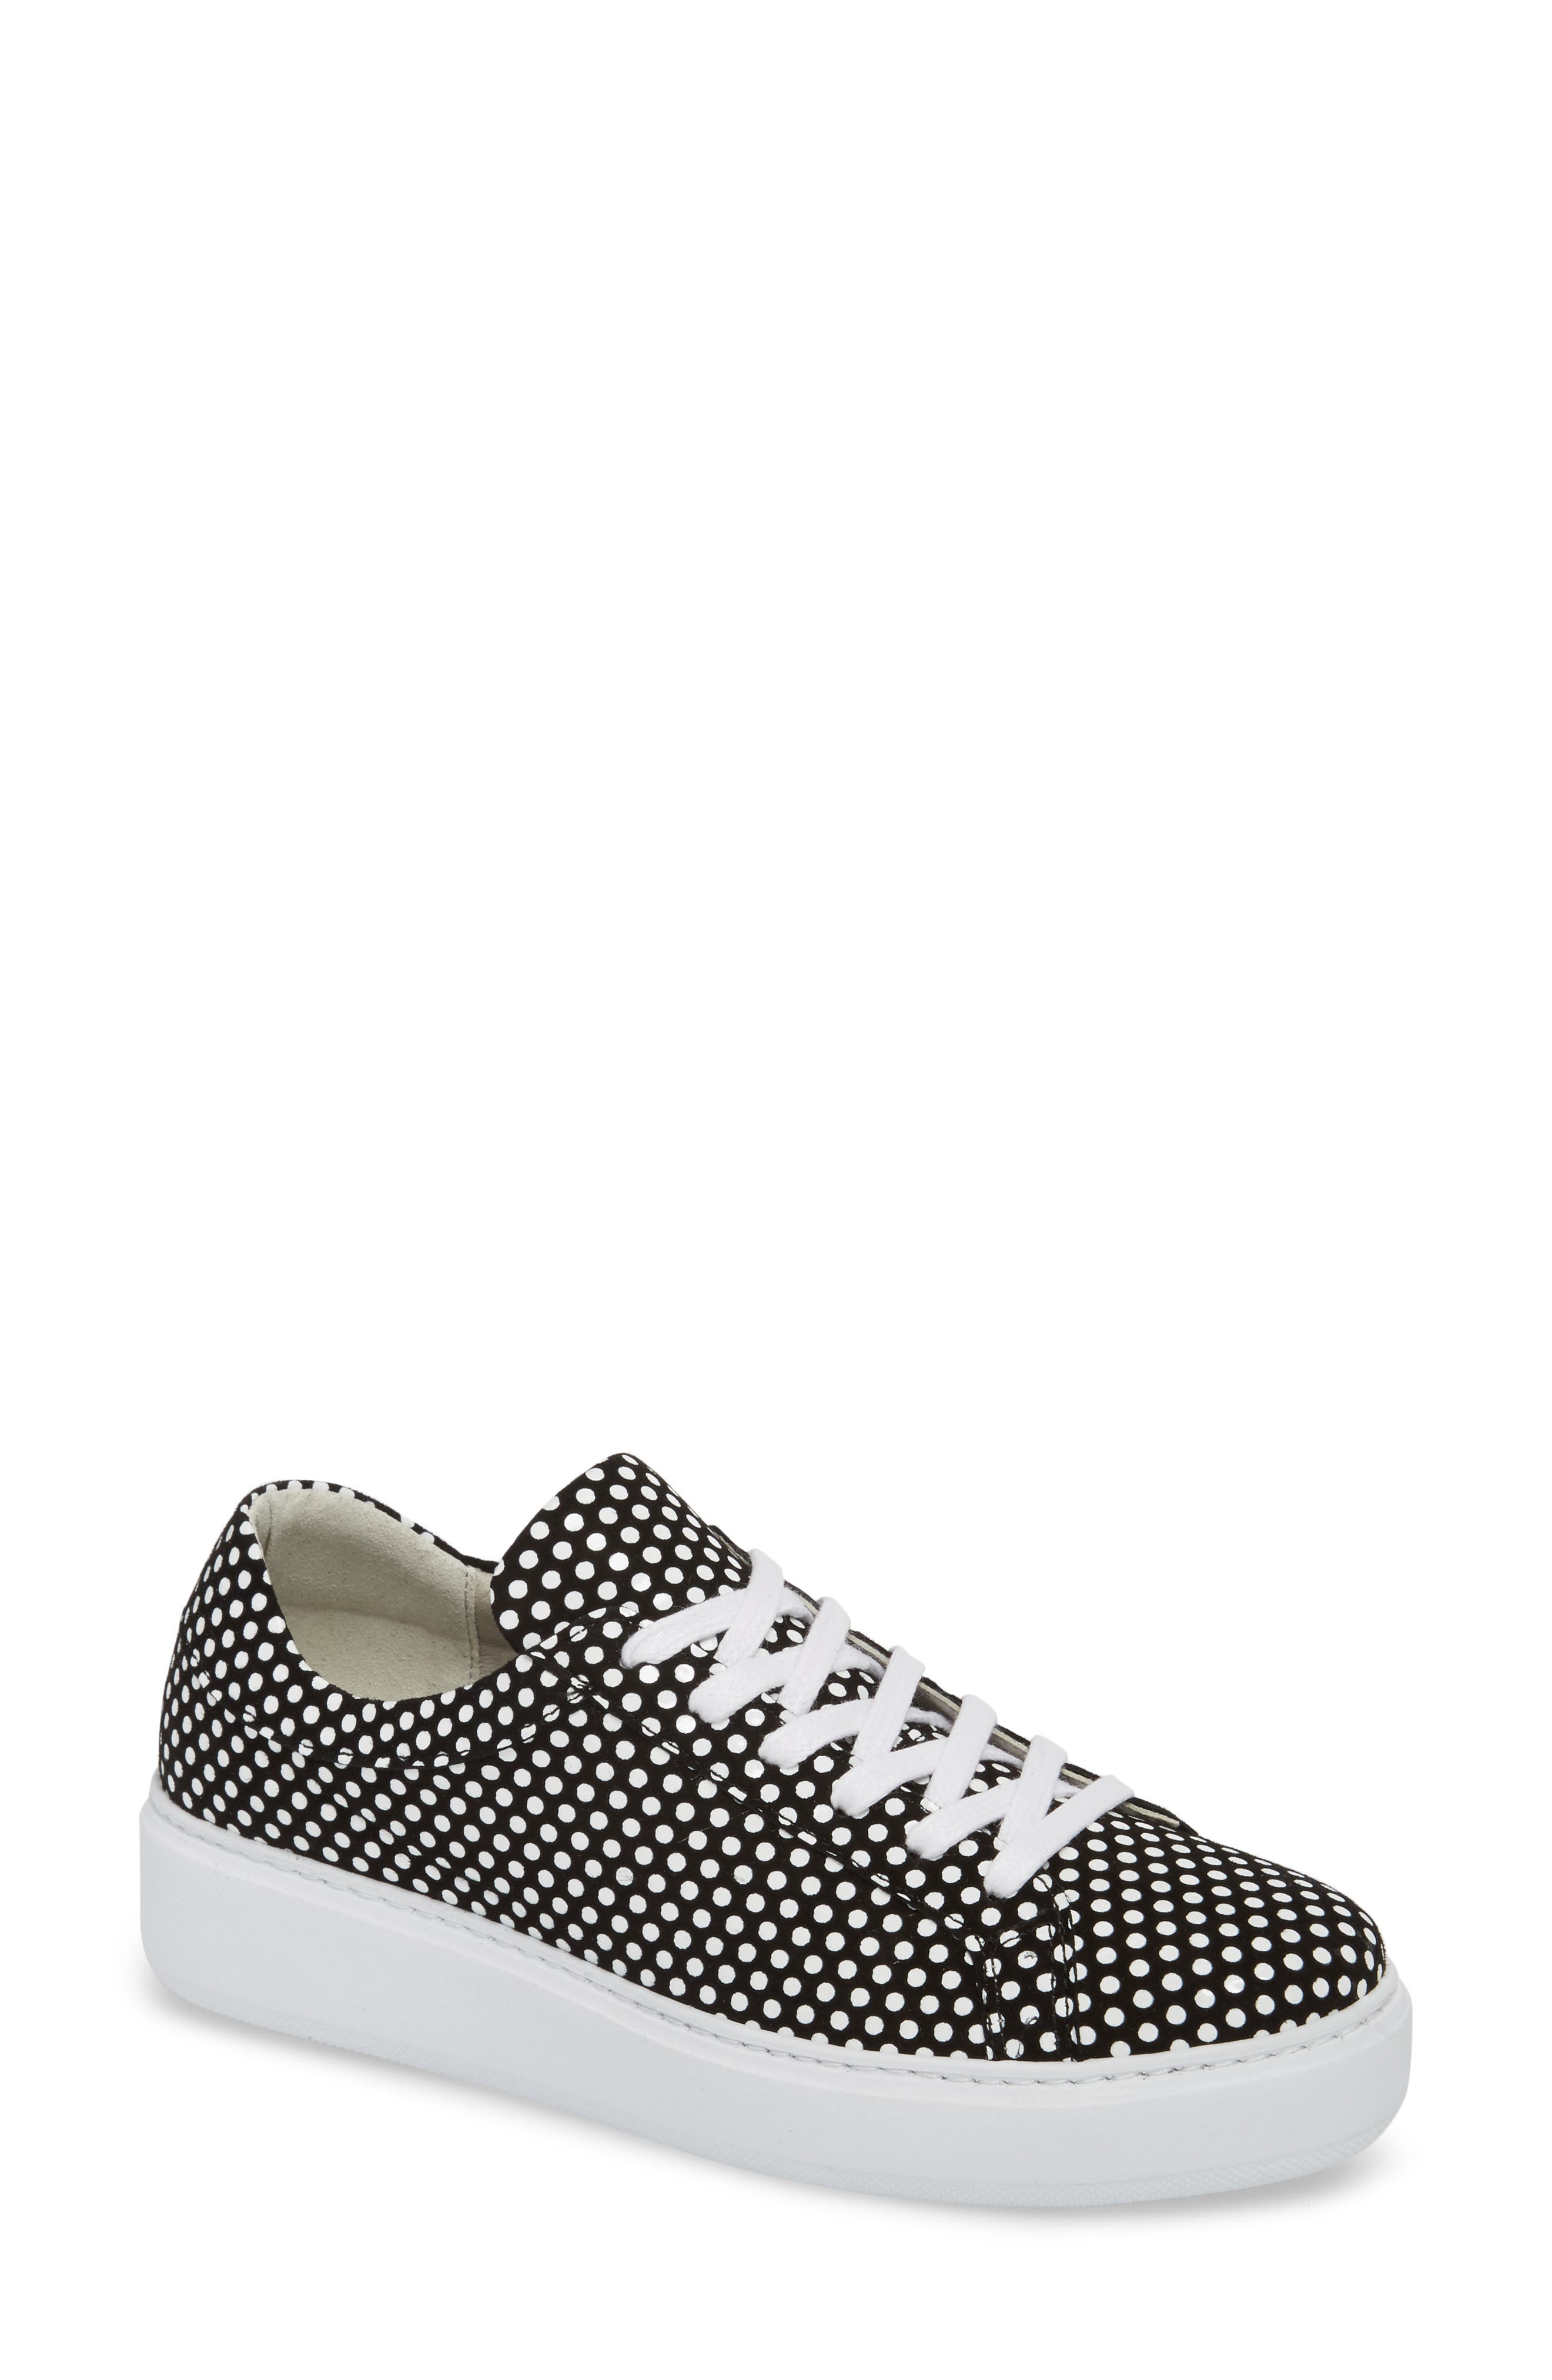 Tully Sneaker,                         Main,                         color, POP SUPREME LEATHER